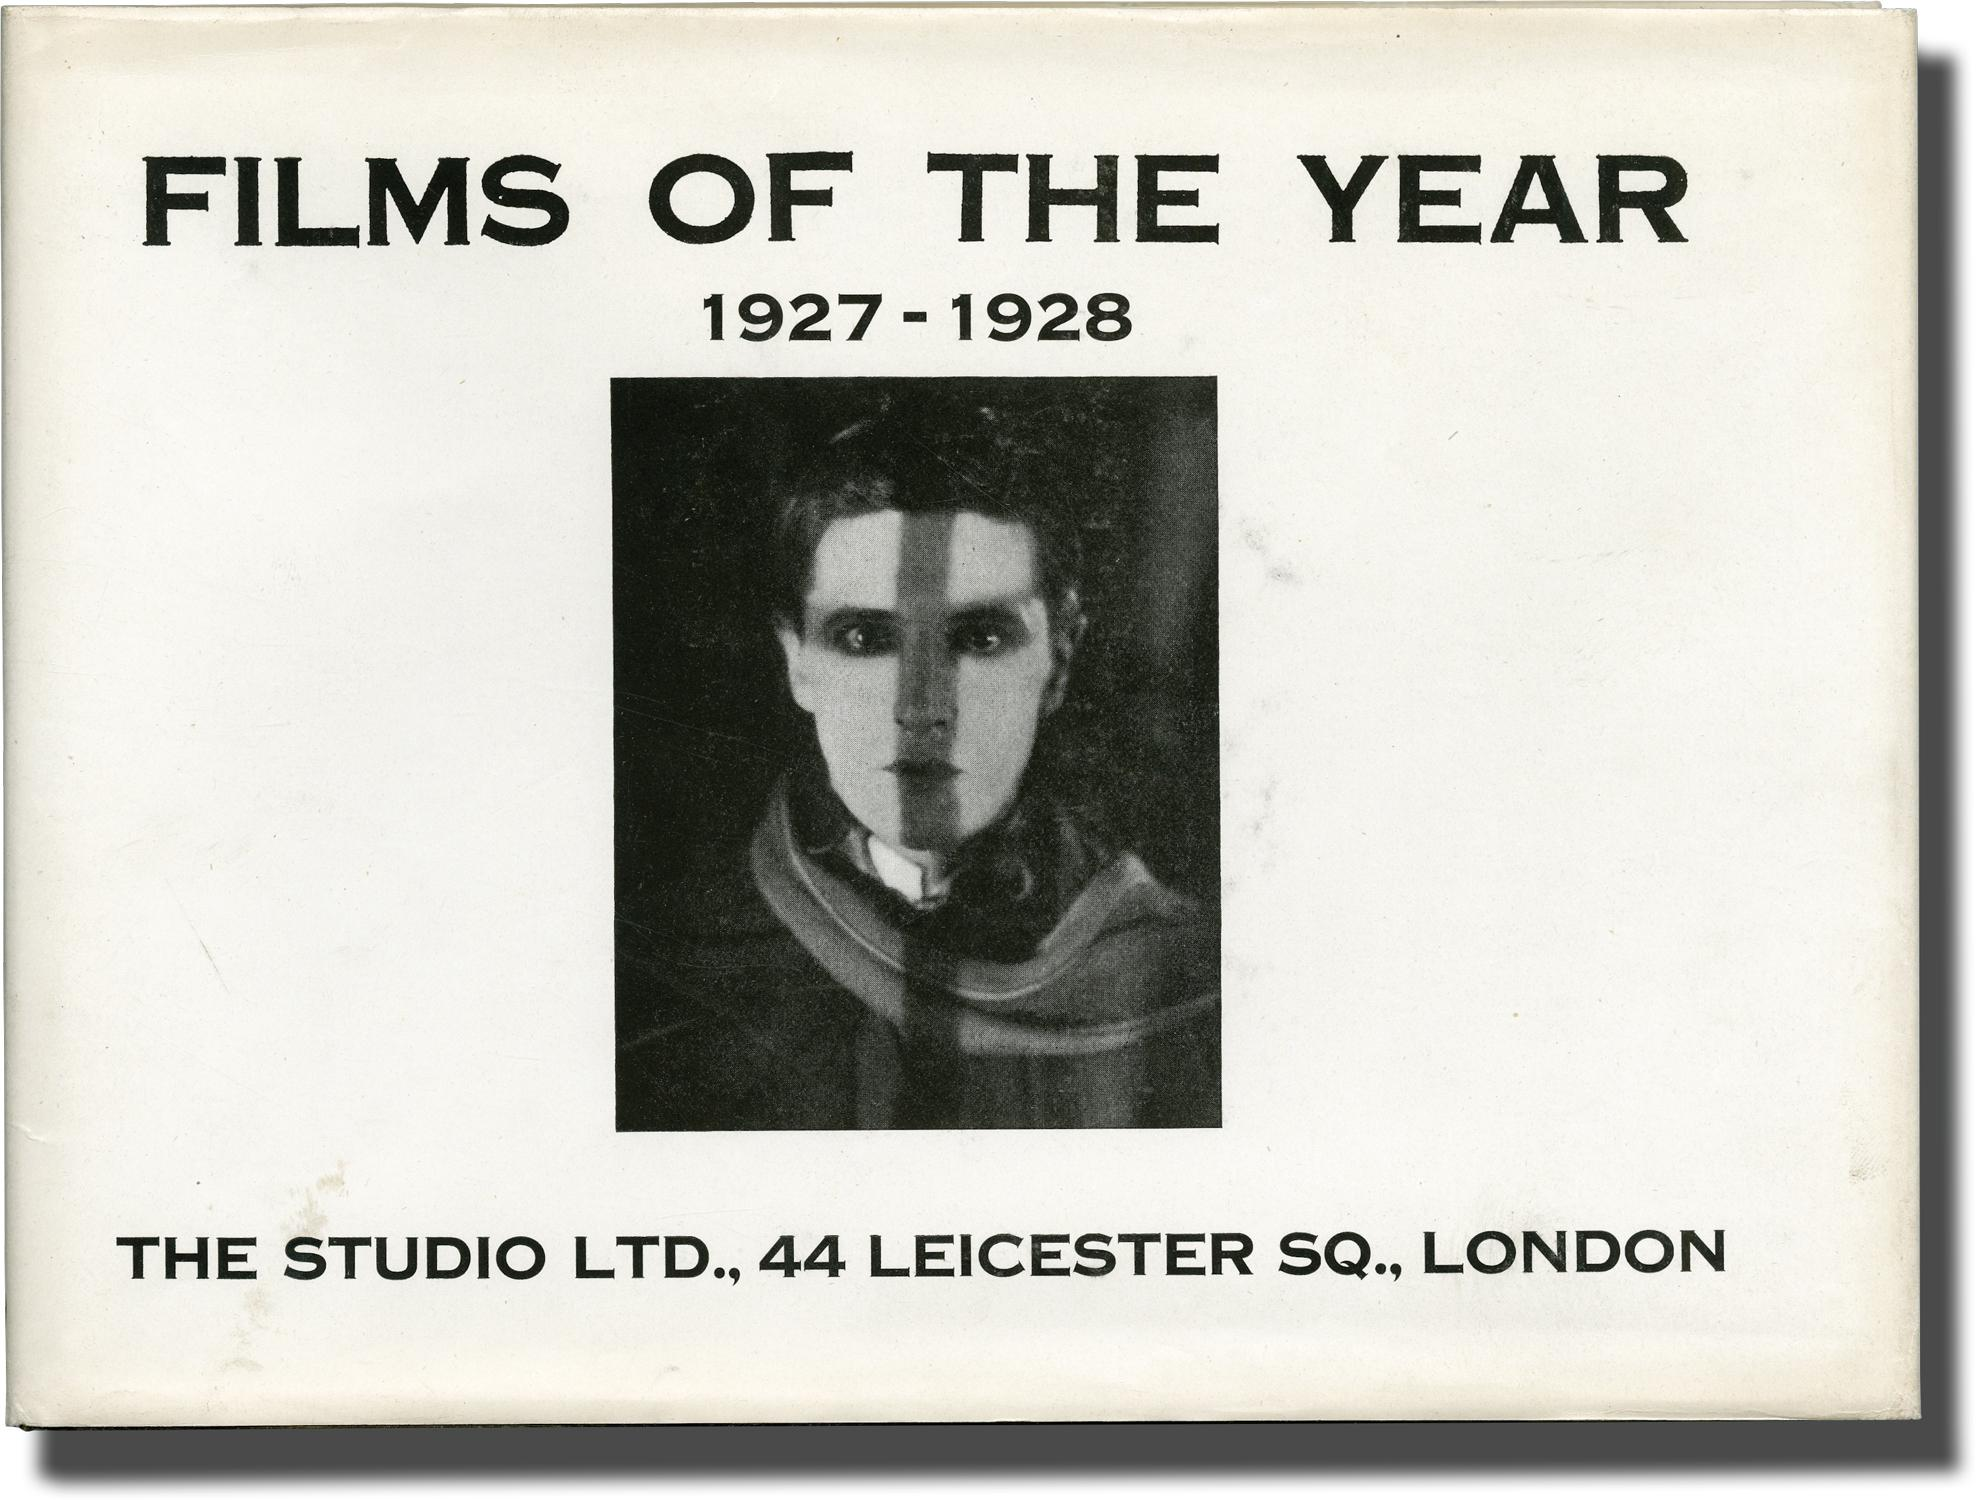 Films of the Year: 1927-1928 (First Edition): Herring, Robert